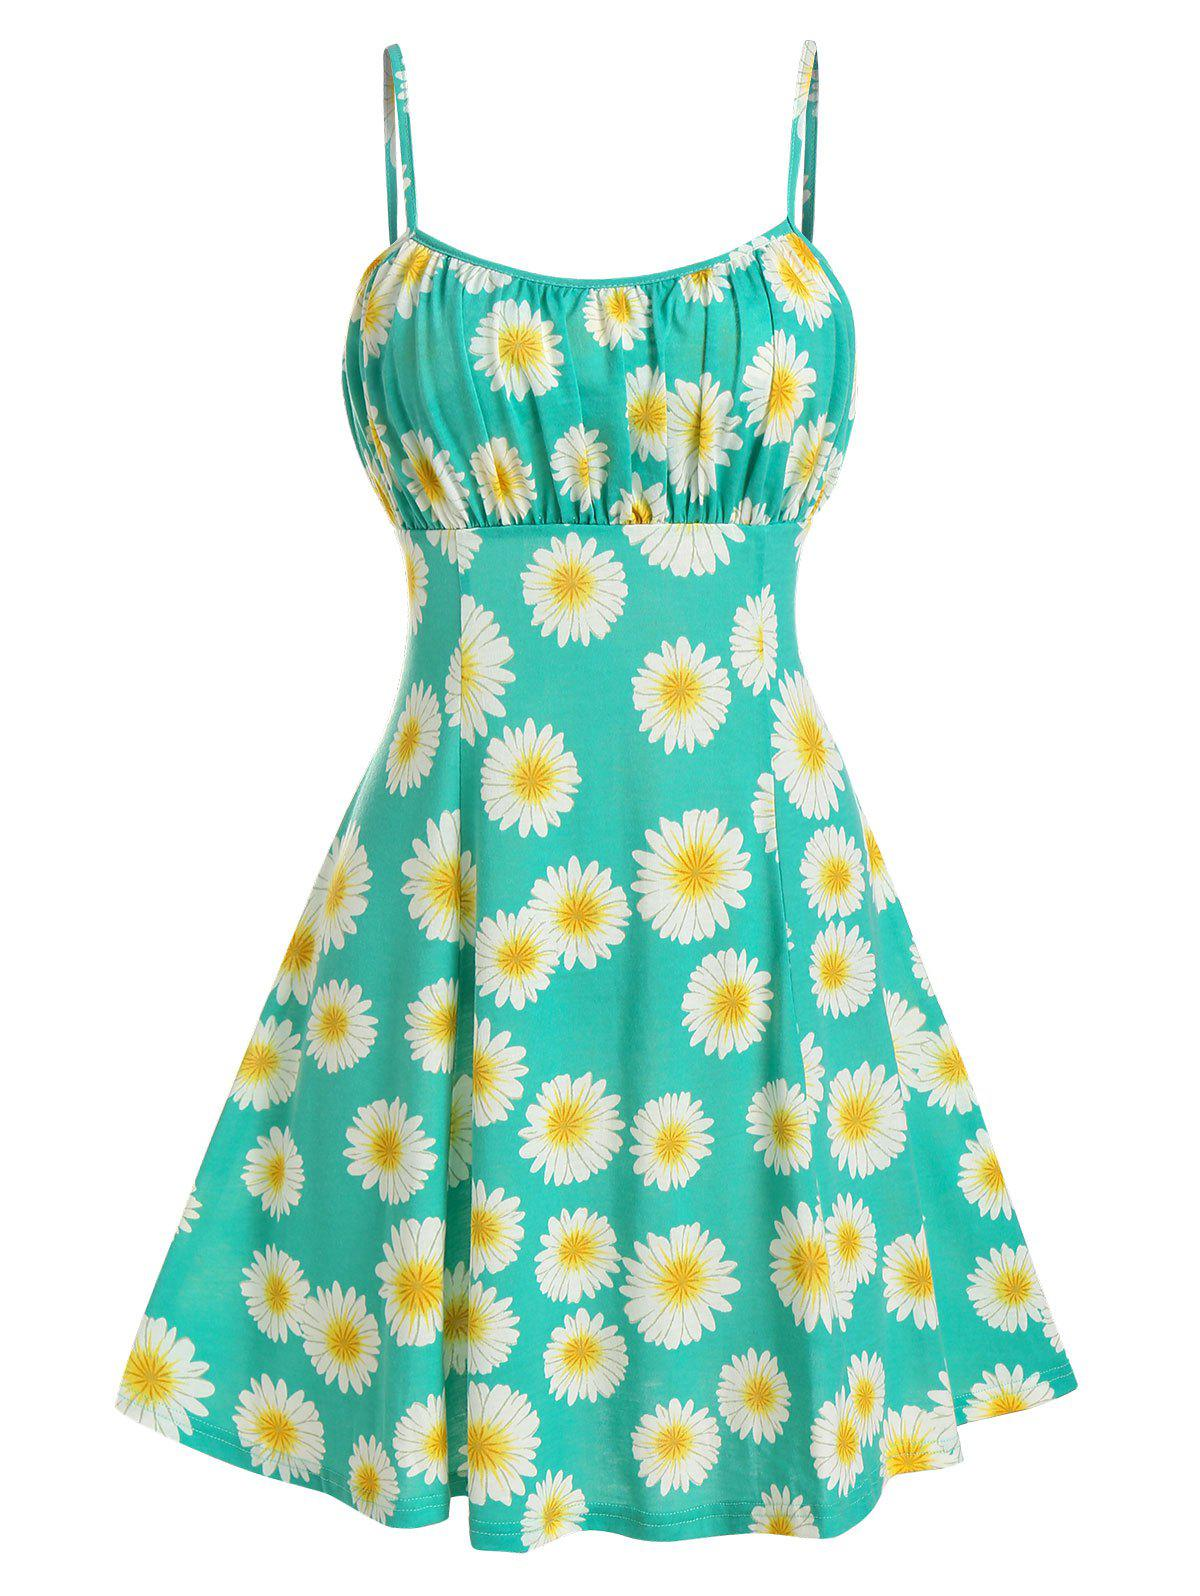 Sunflower Print Ruched Cami A Line Dress - TURQUOISE L